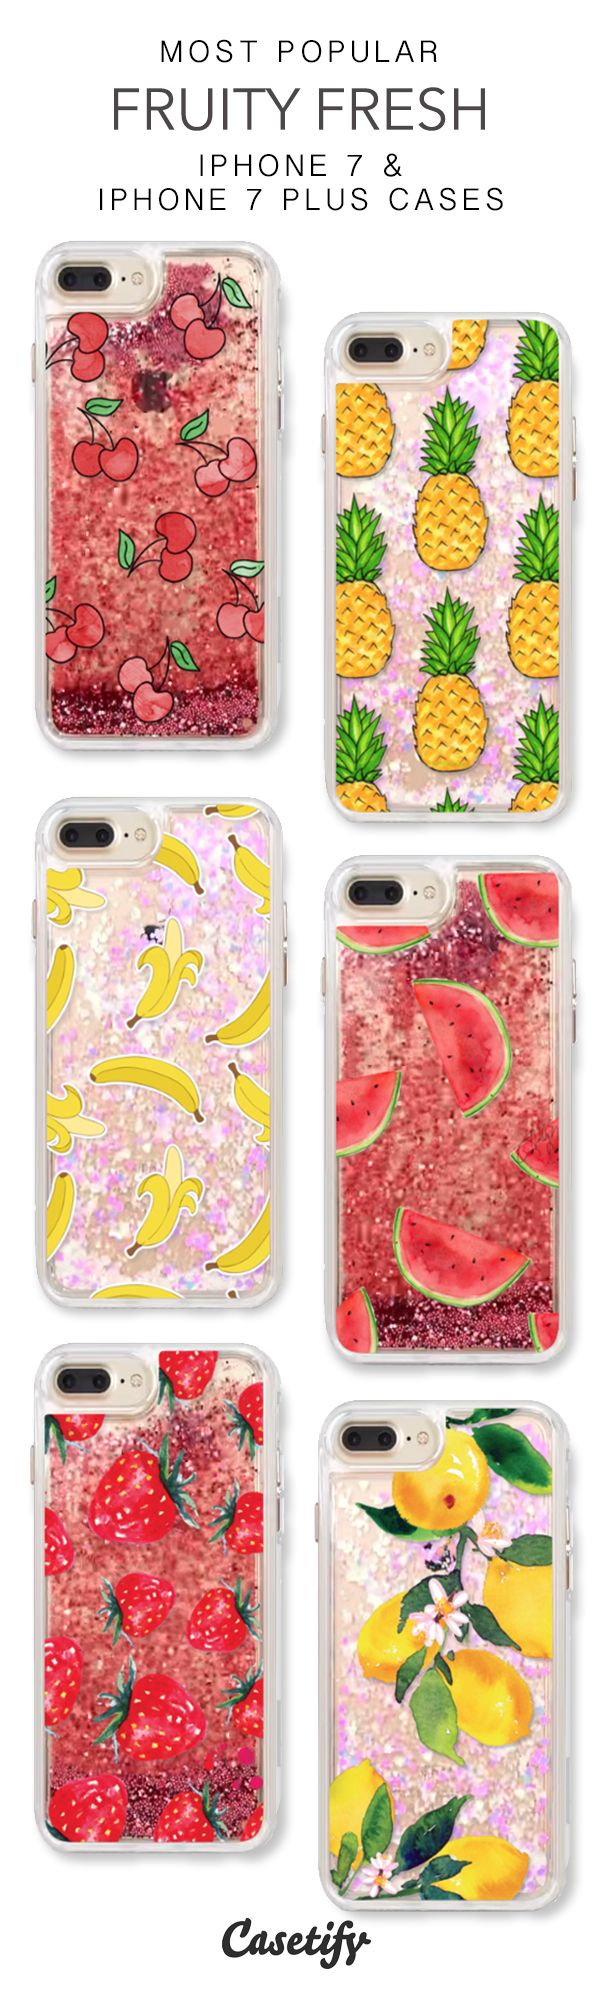 Most Popular Fruity Fresh iPhone 7 Cases & iPhone 7 Plus Cases. More glitter iPhone case here >?https://www.casetify.com/en_US/collections/iphone-7-glitter-cases#/?vc=PmtFECxru3